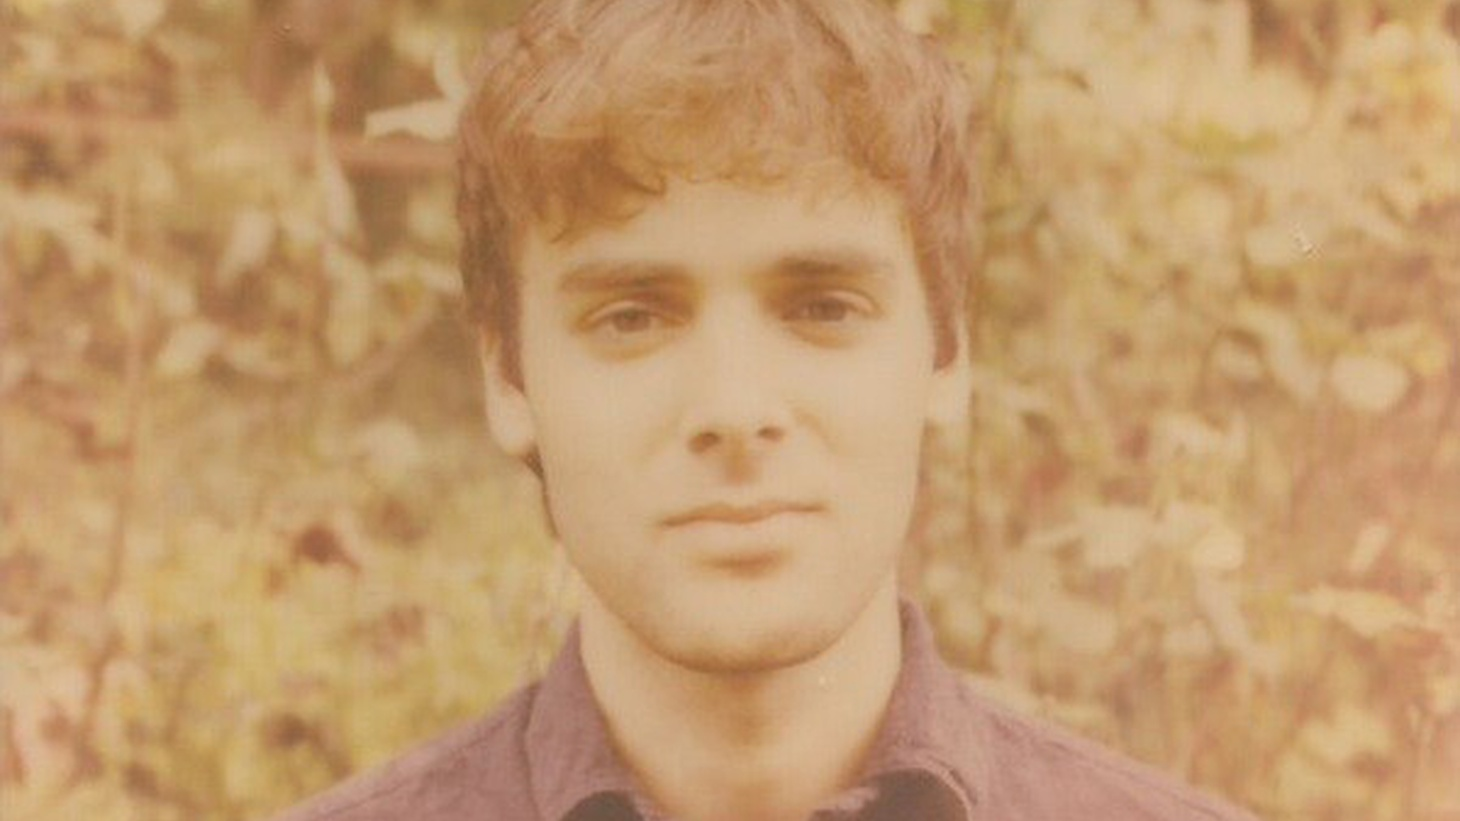 Day Wave's debut album is filled with lush, sun-soaked guitar pop with dreamy vocals.